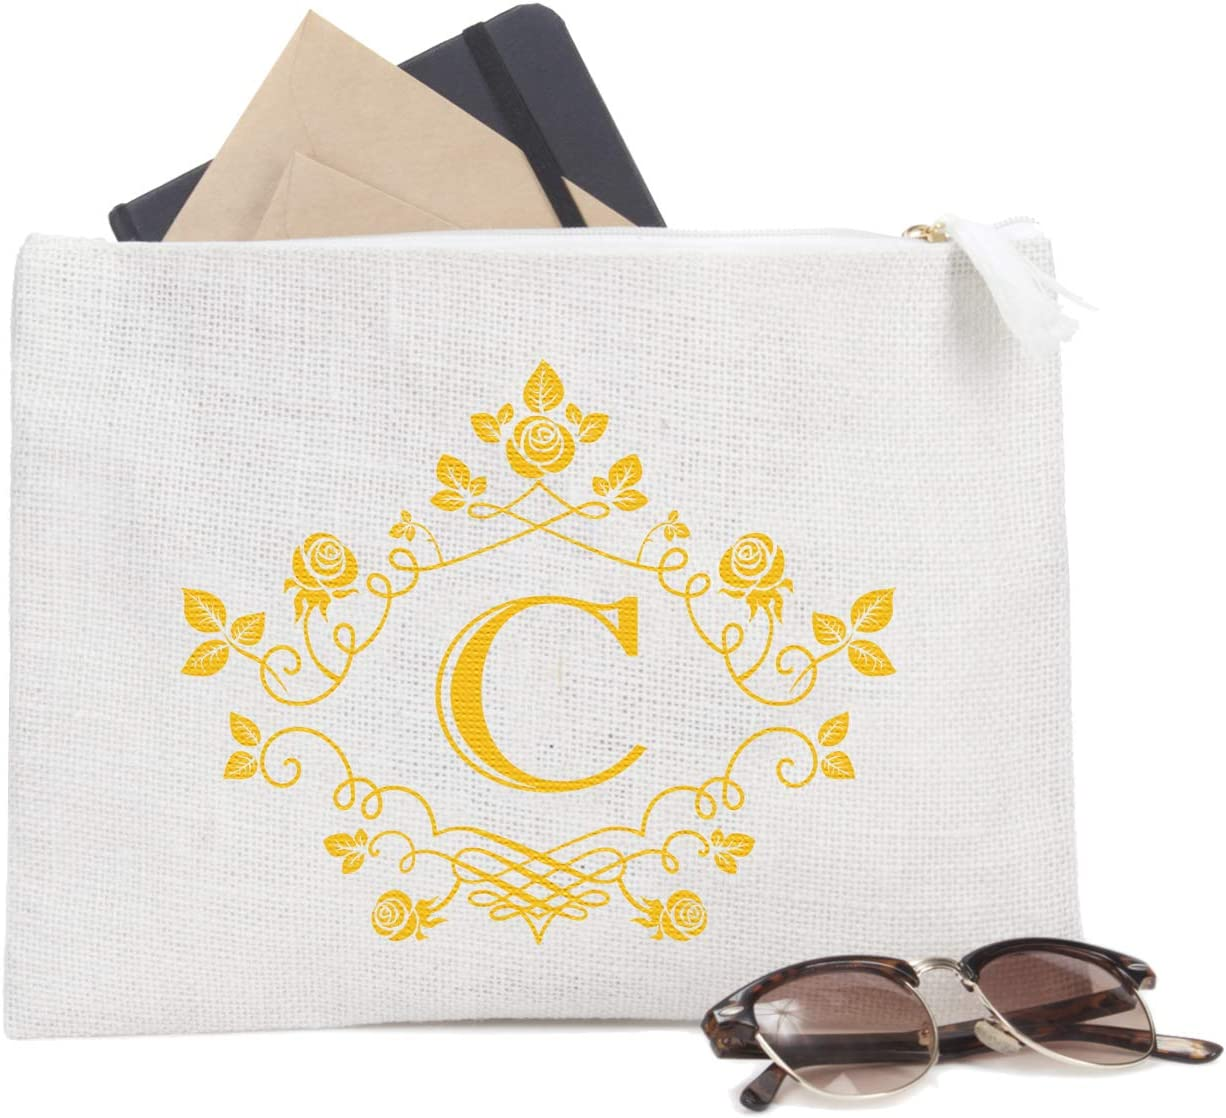 ElegantPark C Initial Monogram Personalized Travel Makeup Cosmetic Bag Jute Clutch Pouch Gifts with Zipper